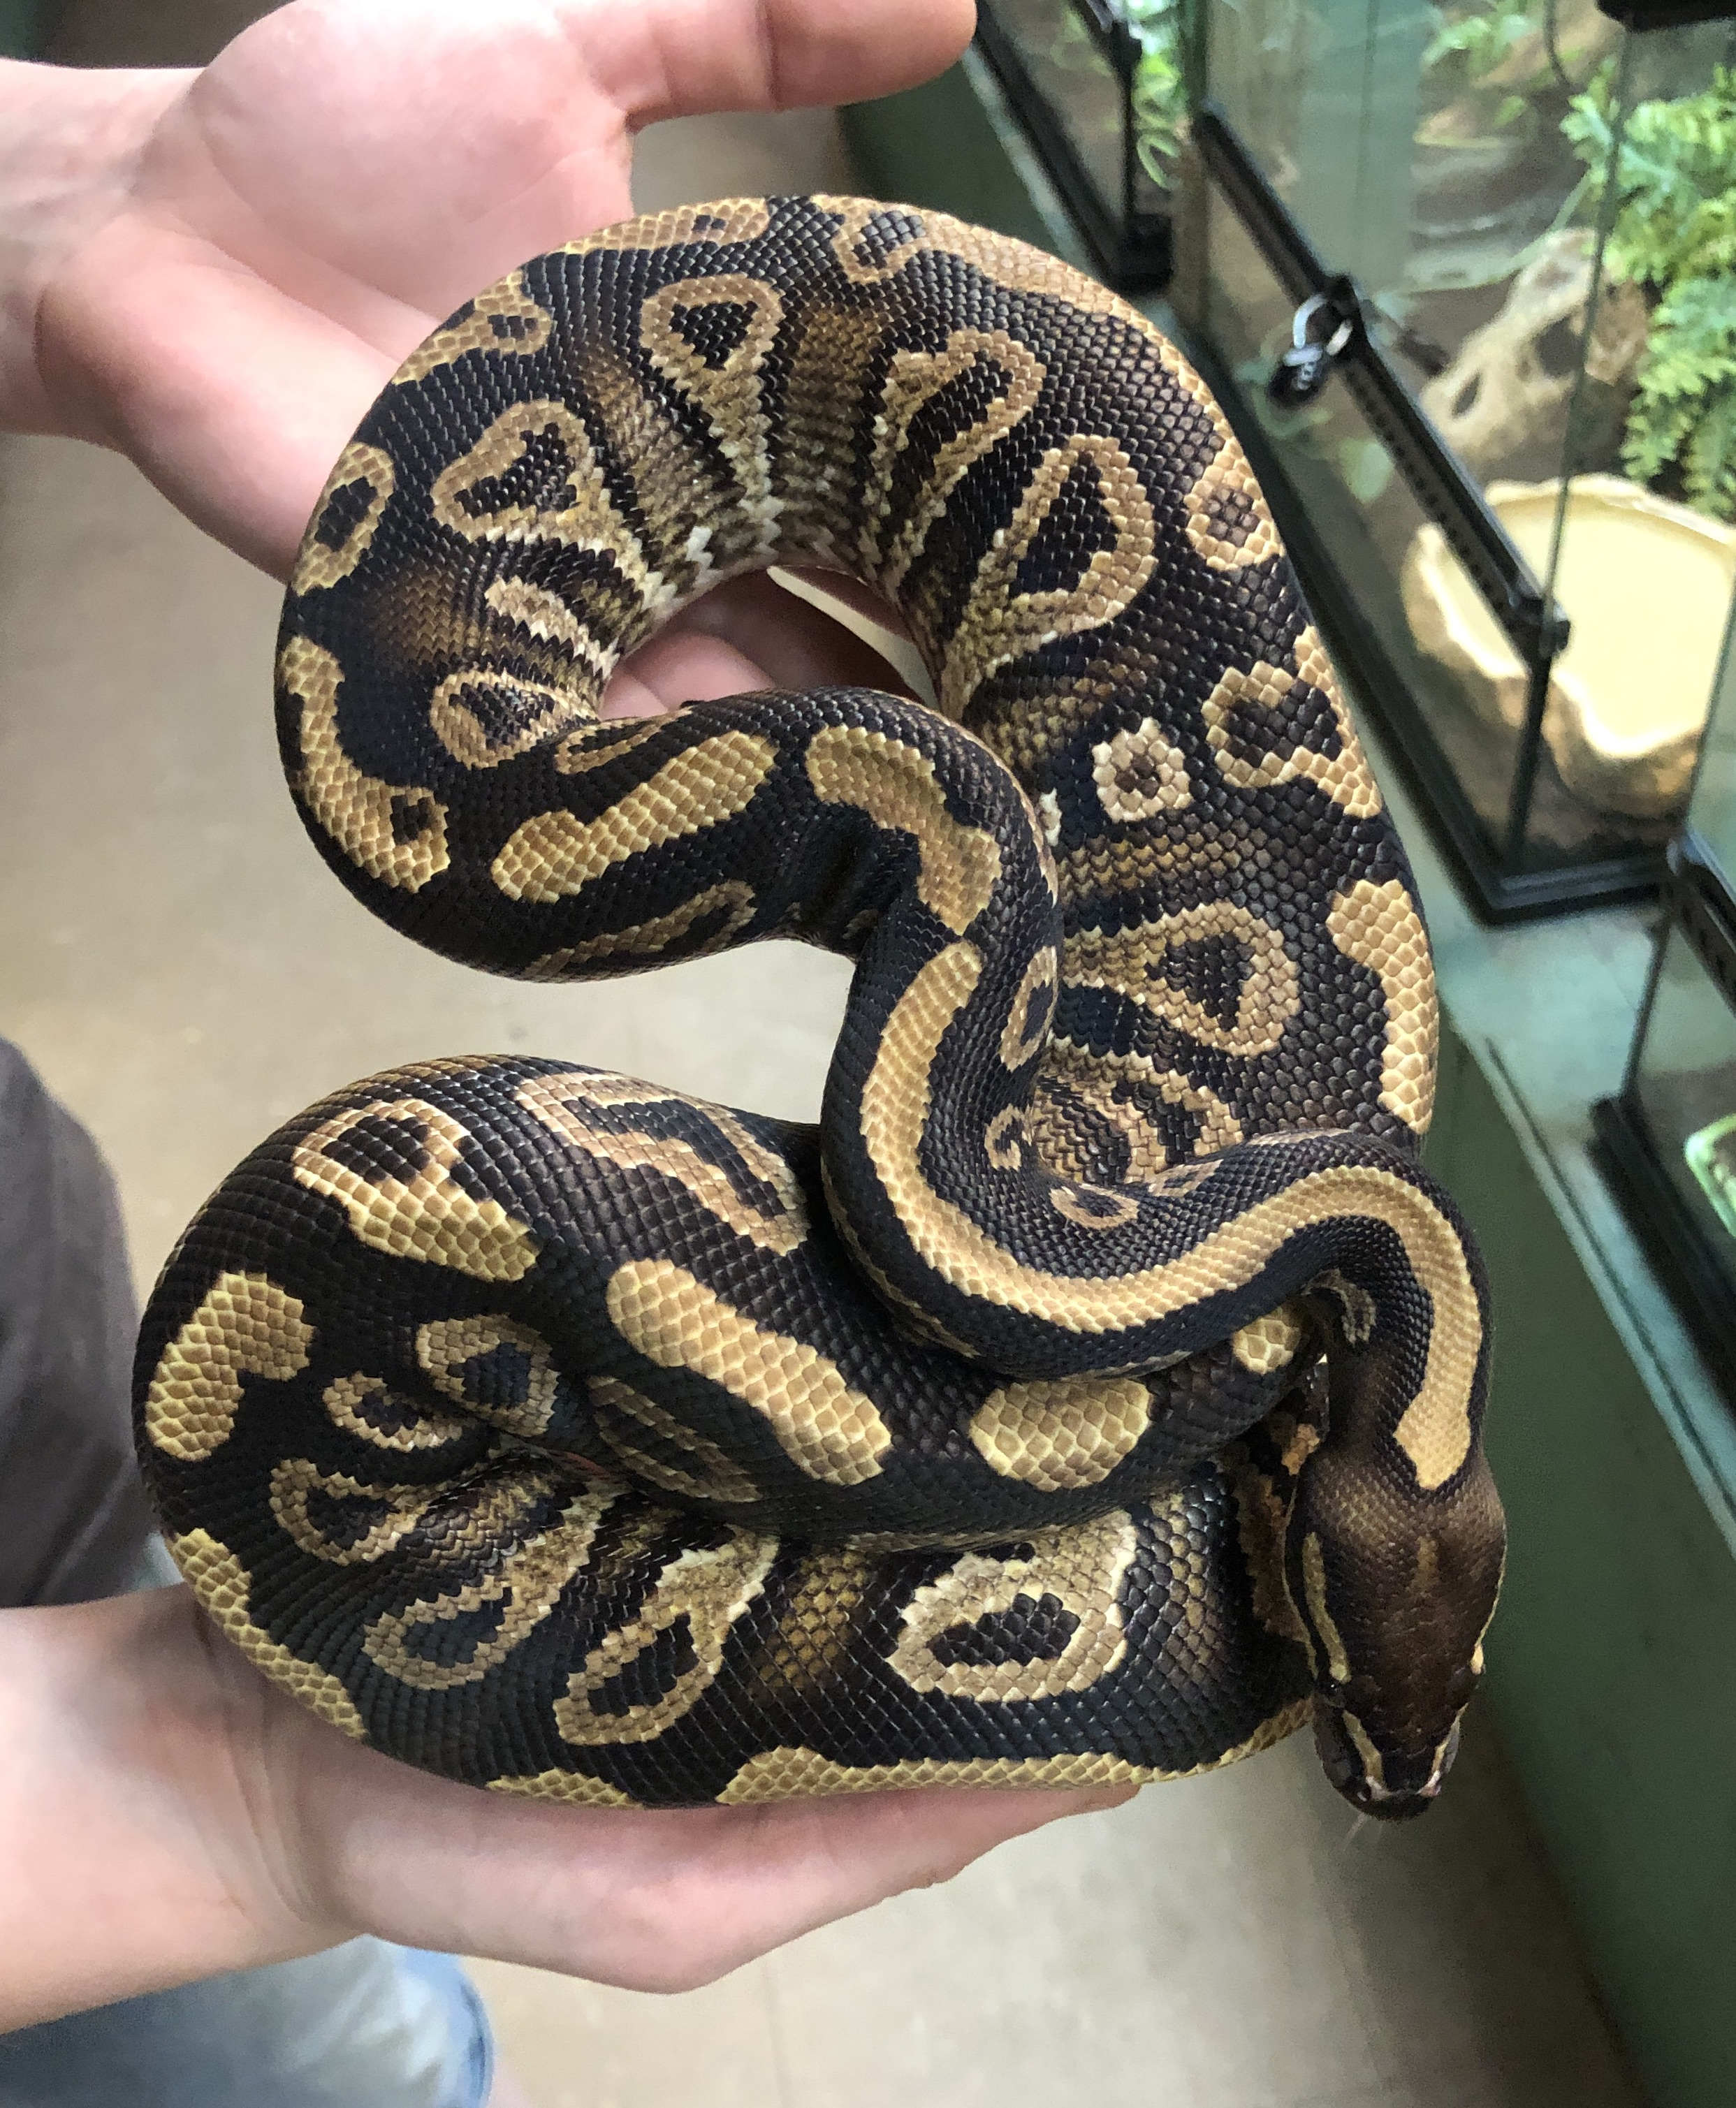 z (OUT OF STOCK) - MYSTIC YELLOW BELLY BALL PYTHON, 2017 FEMALE, 725 grams - Python regius